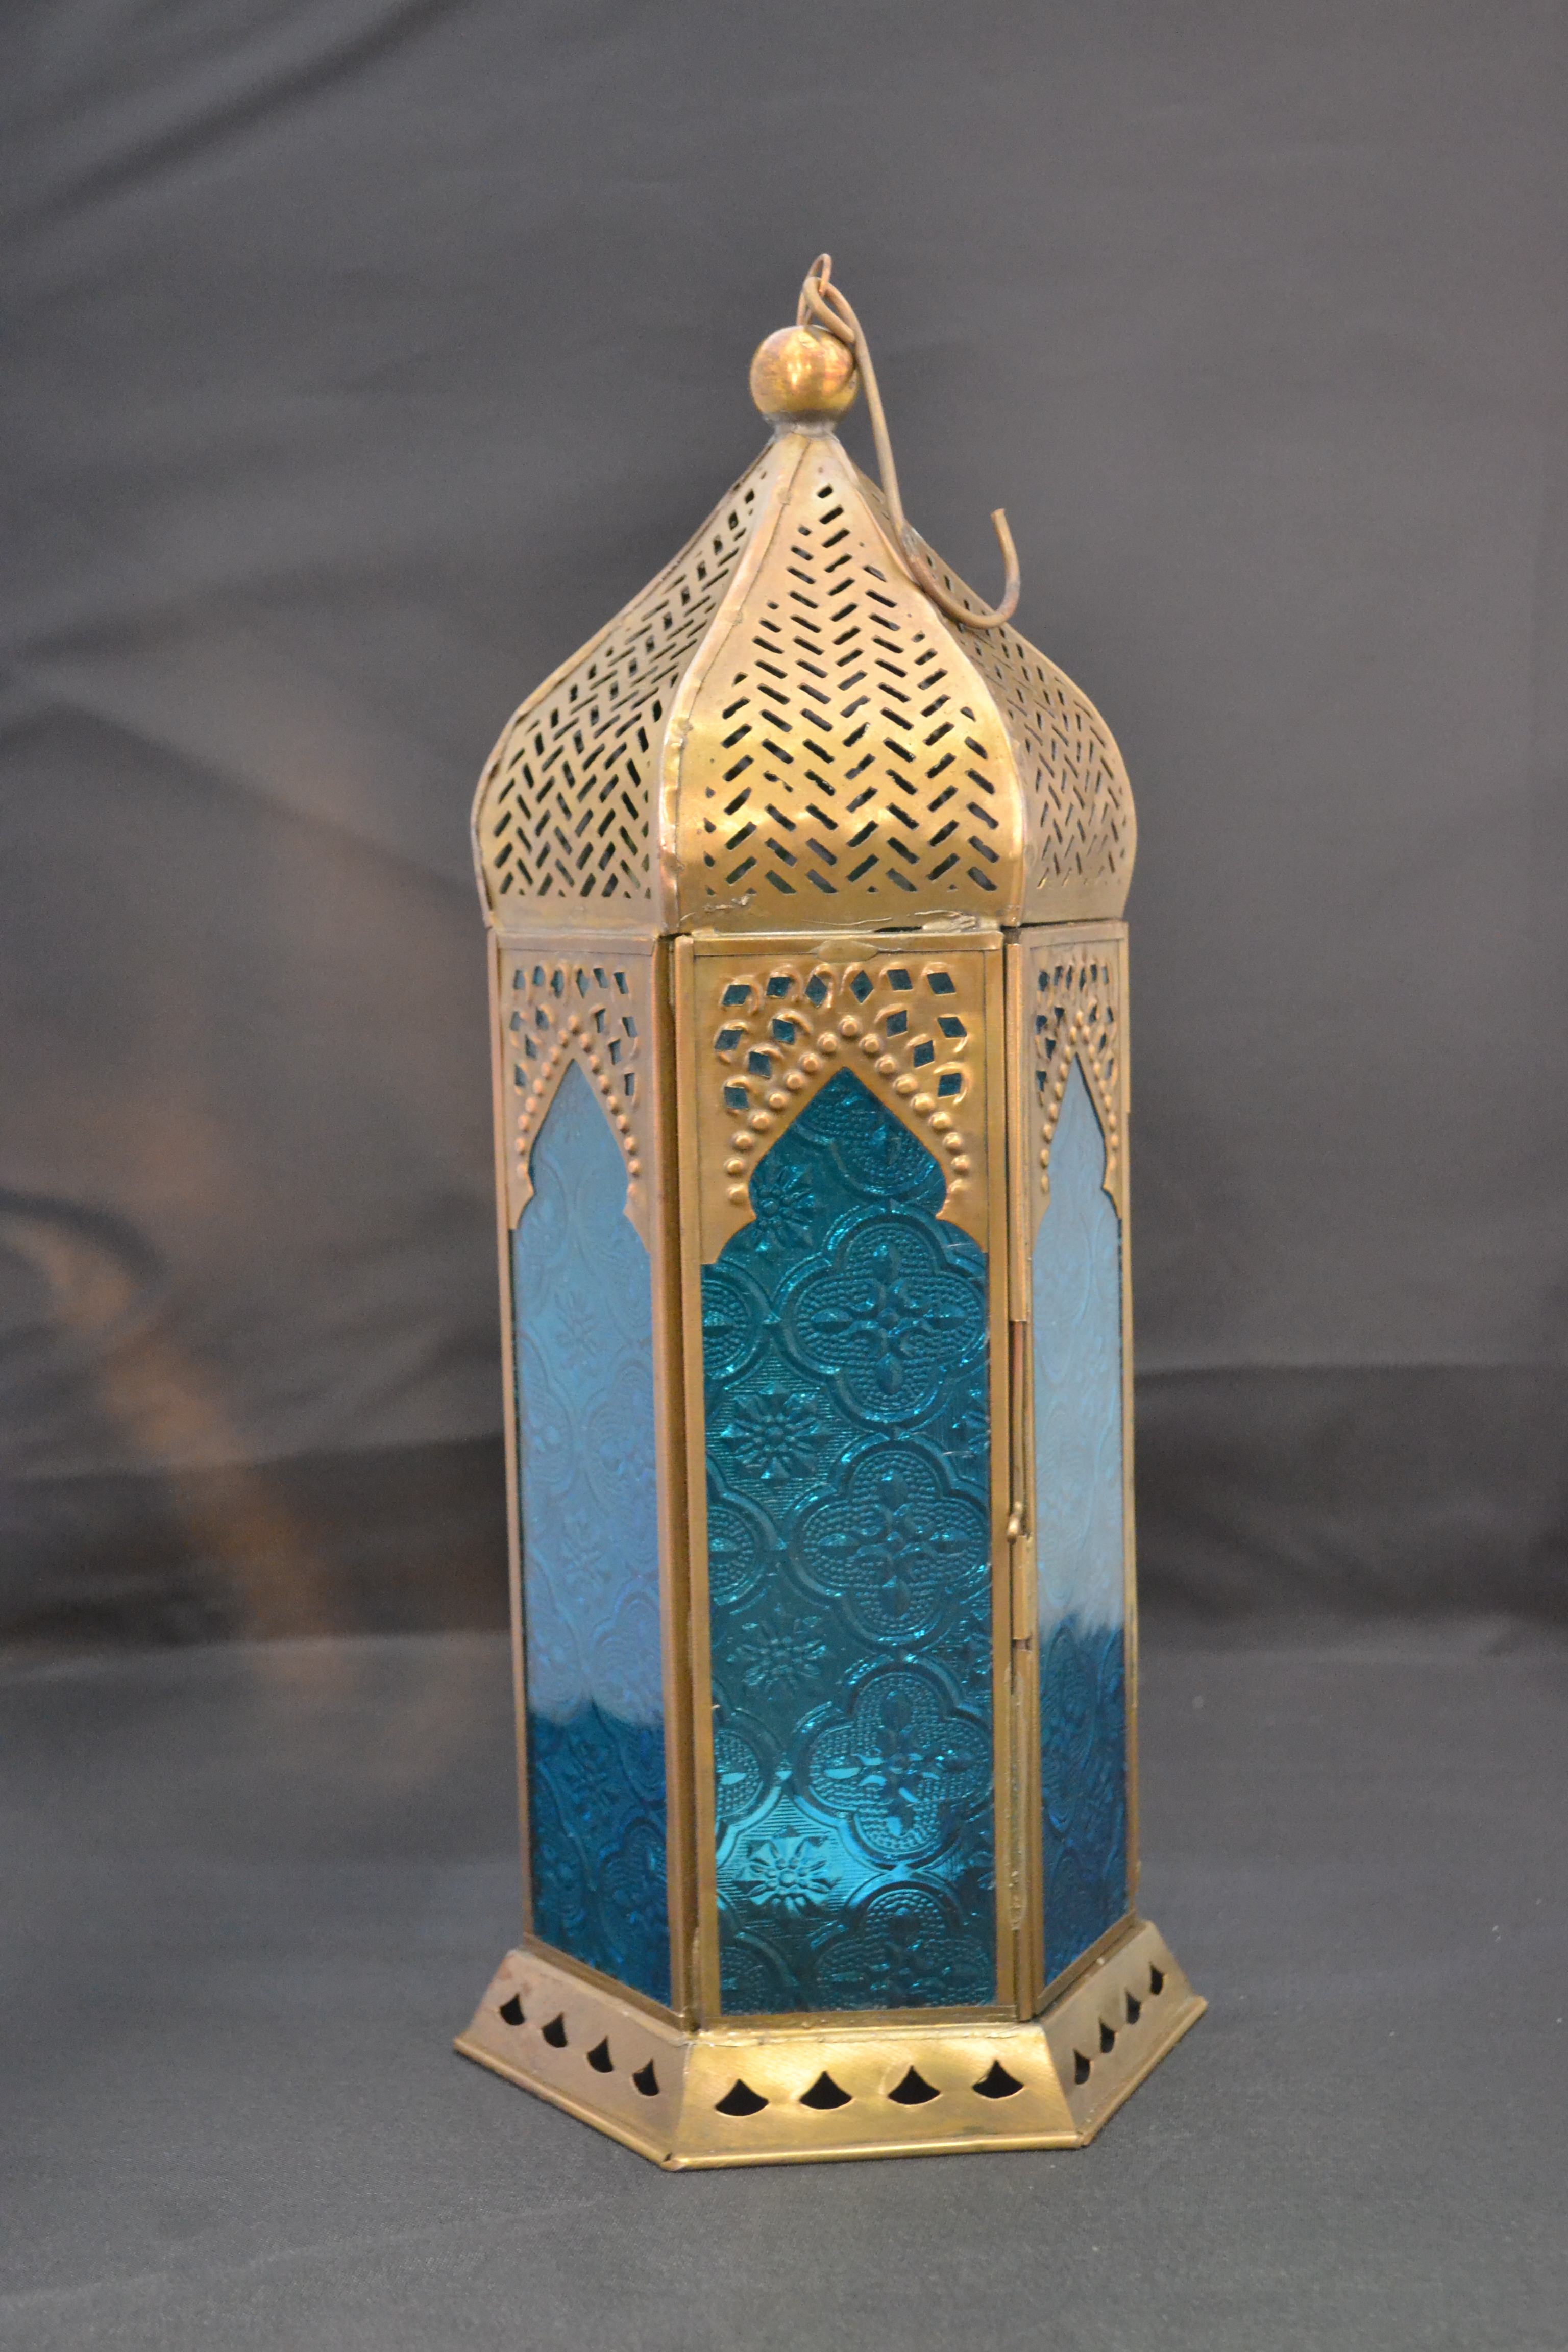 Moroccan Lantern Gold And Turquoise Ornate Rentals Online